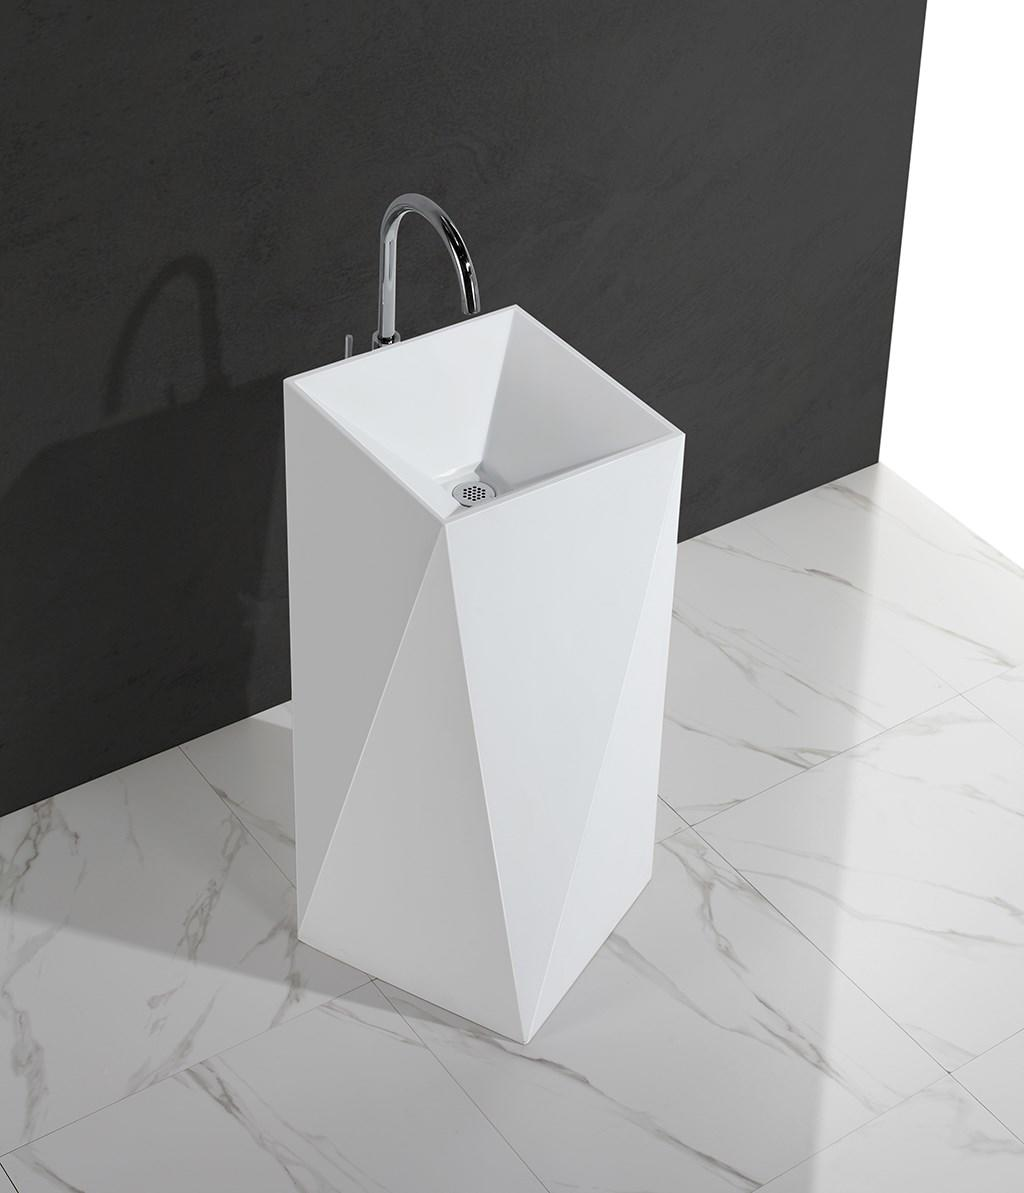 shelf bathroom sink stand design for hotel-1